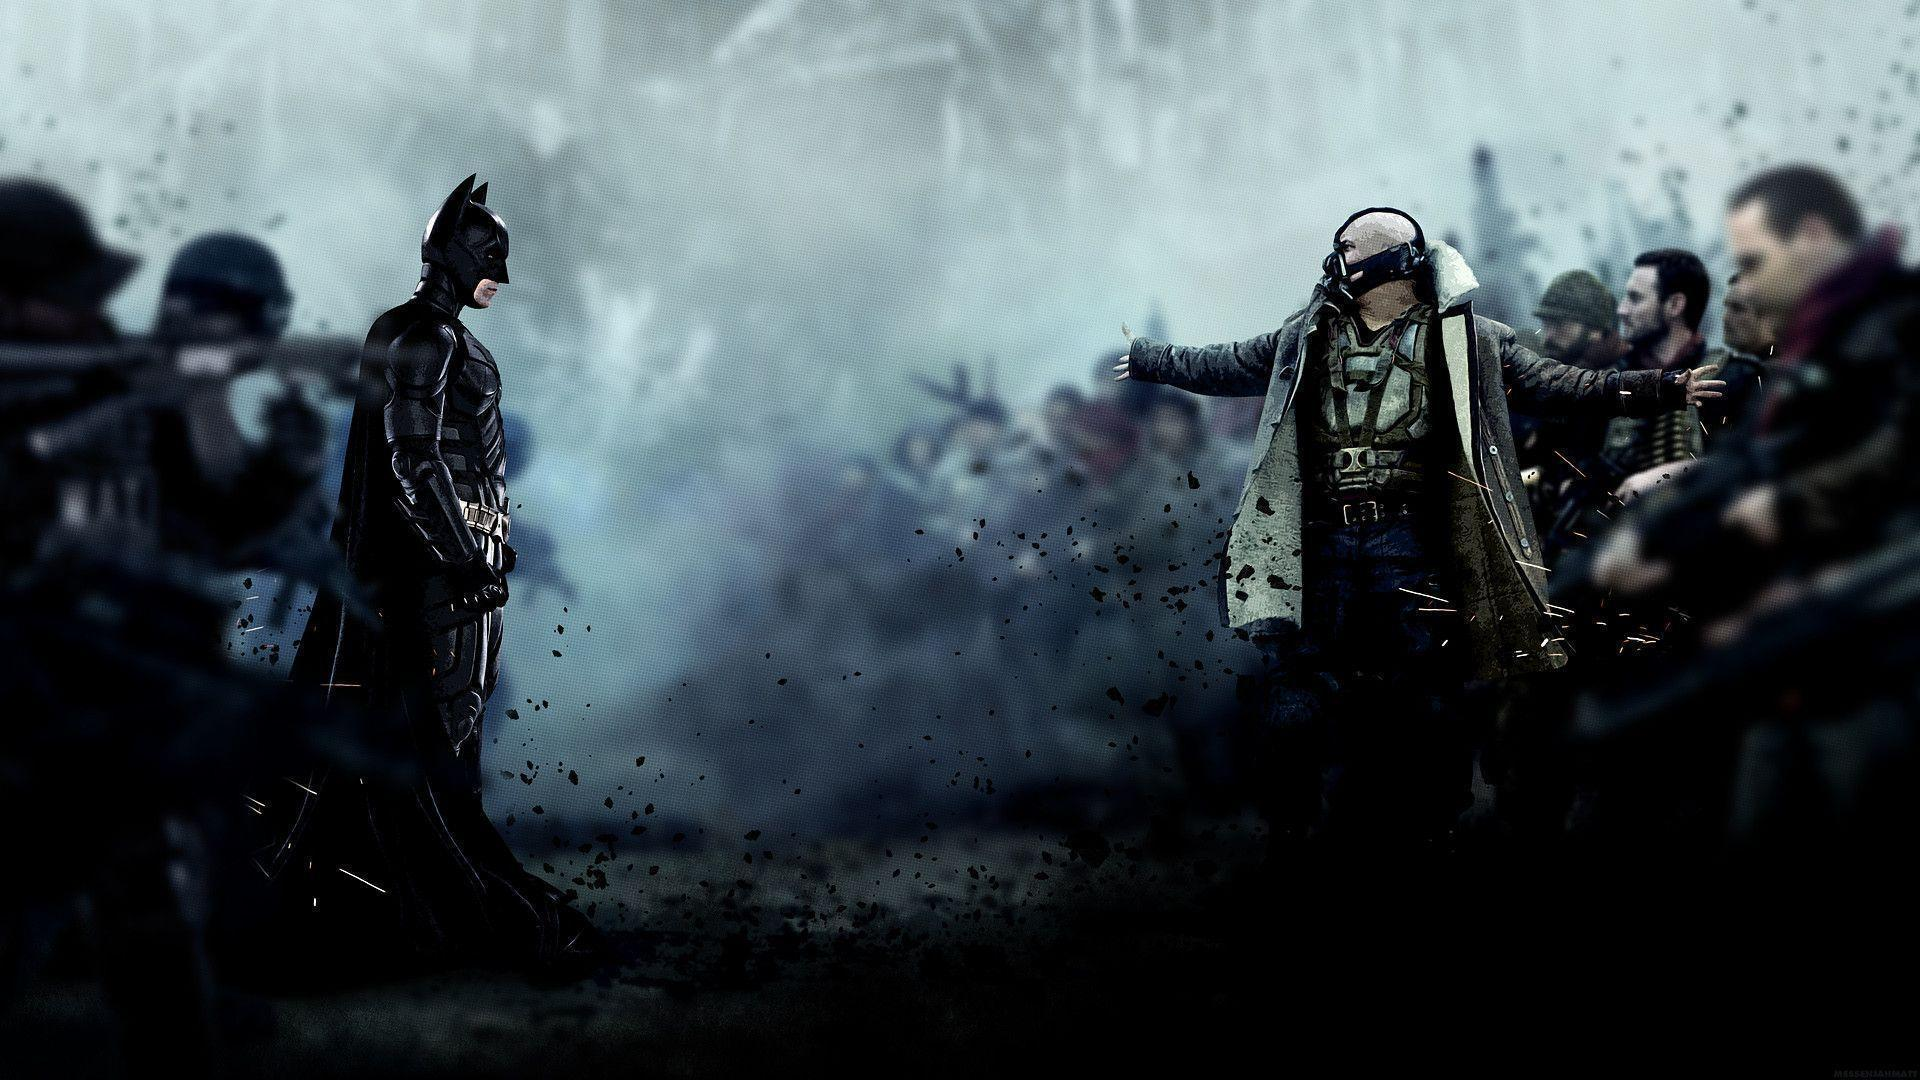 69 The Dark Knight Hd Wallpaper On Wallpapersafari